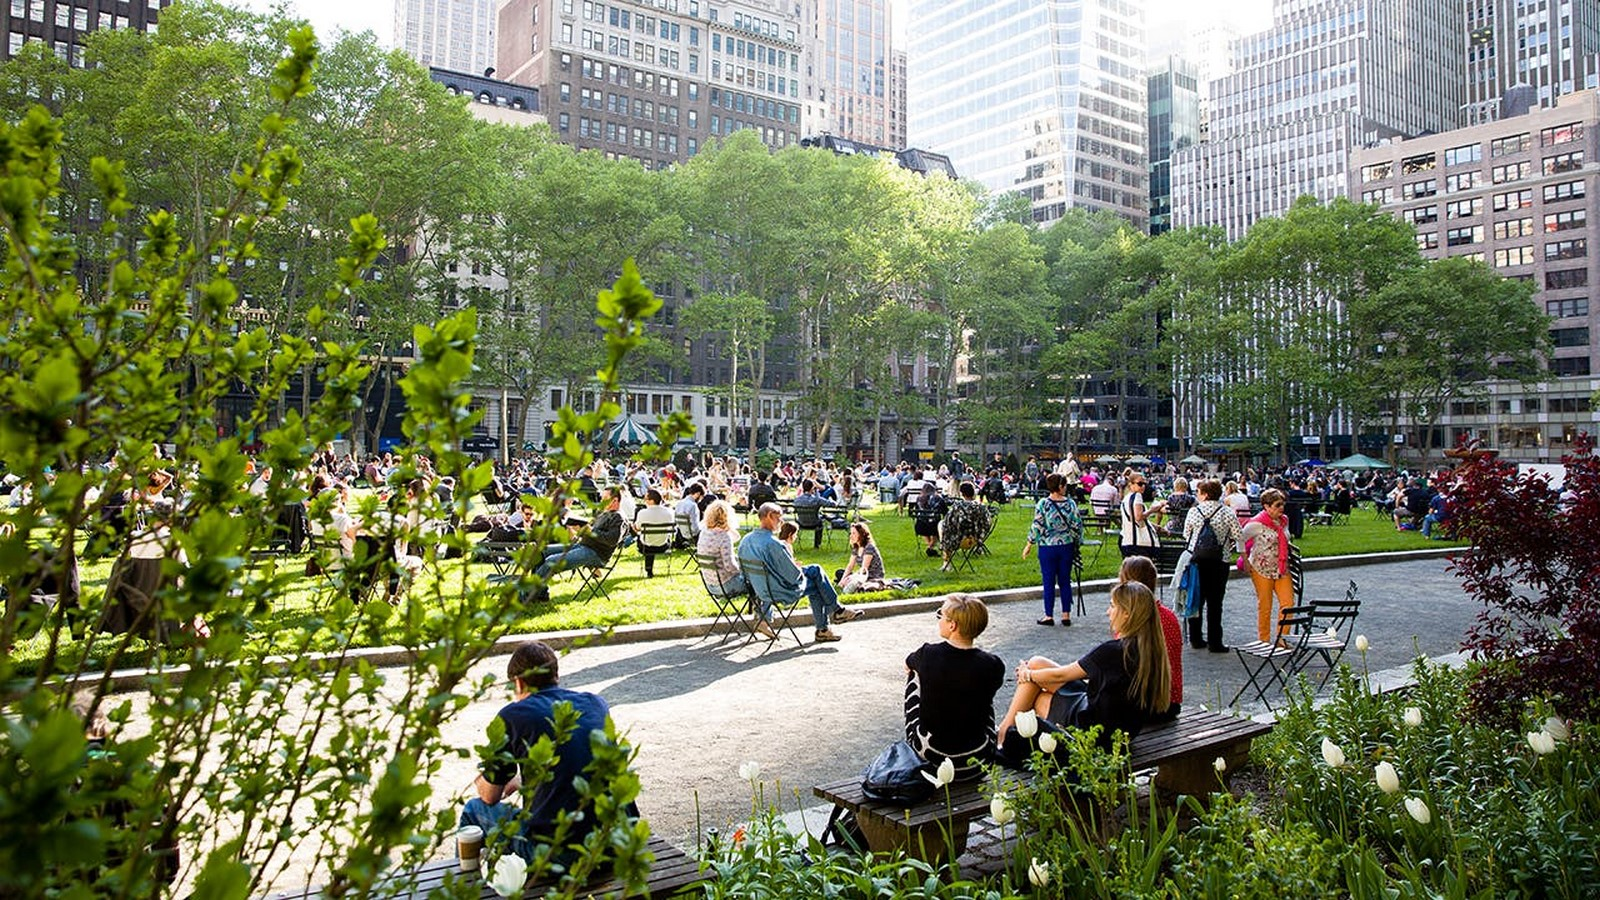 Importance of Public spaces in any urban fabric - Sheet4